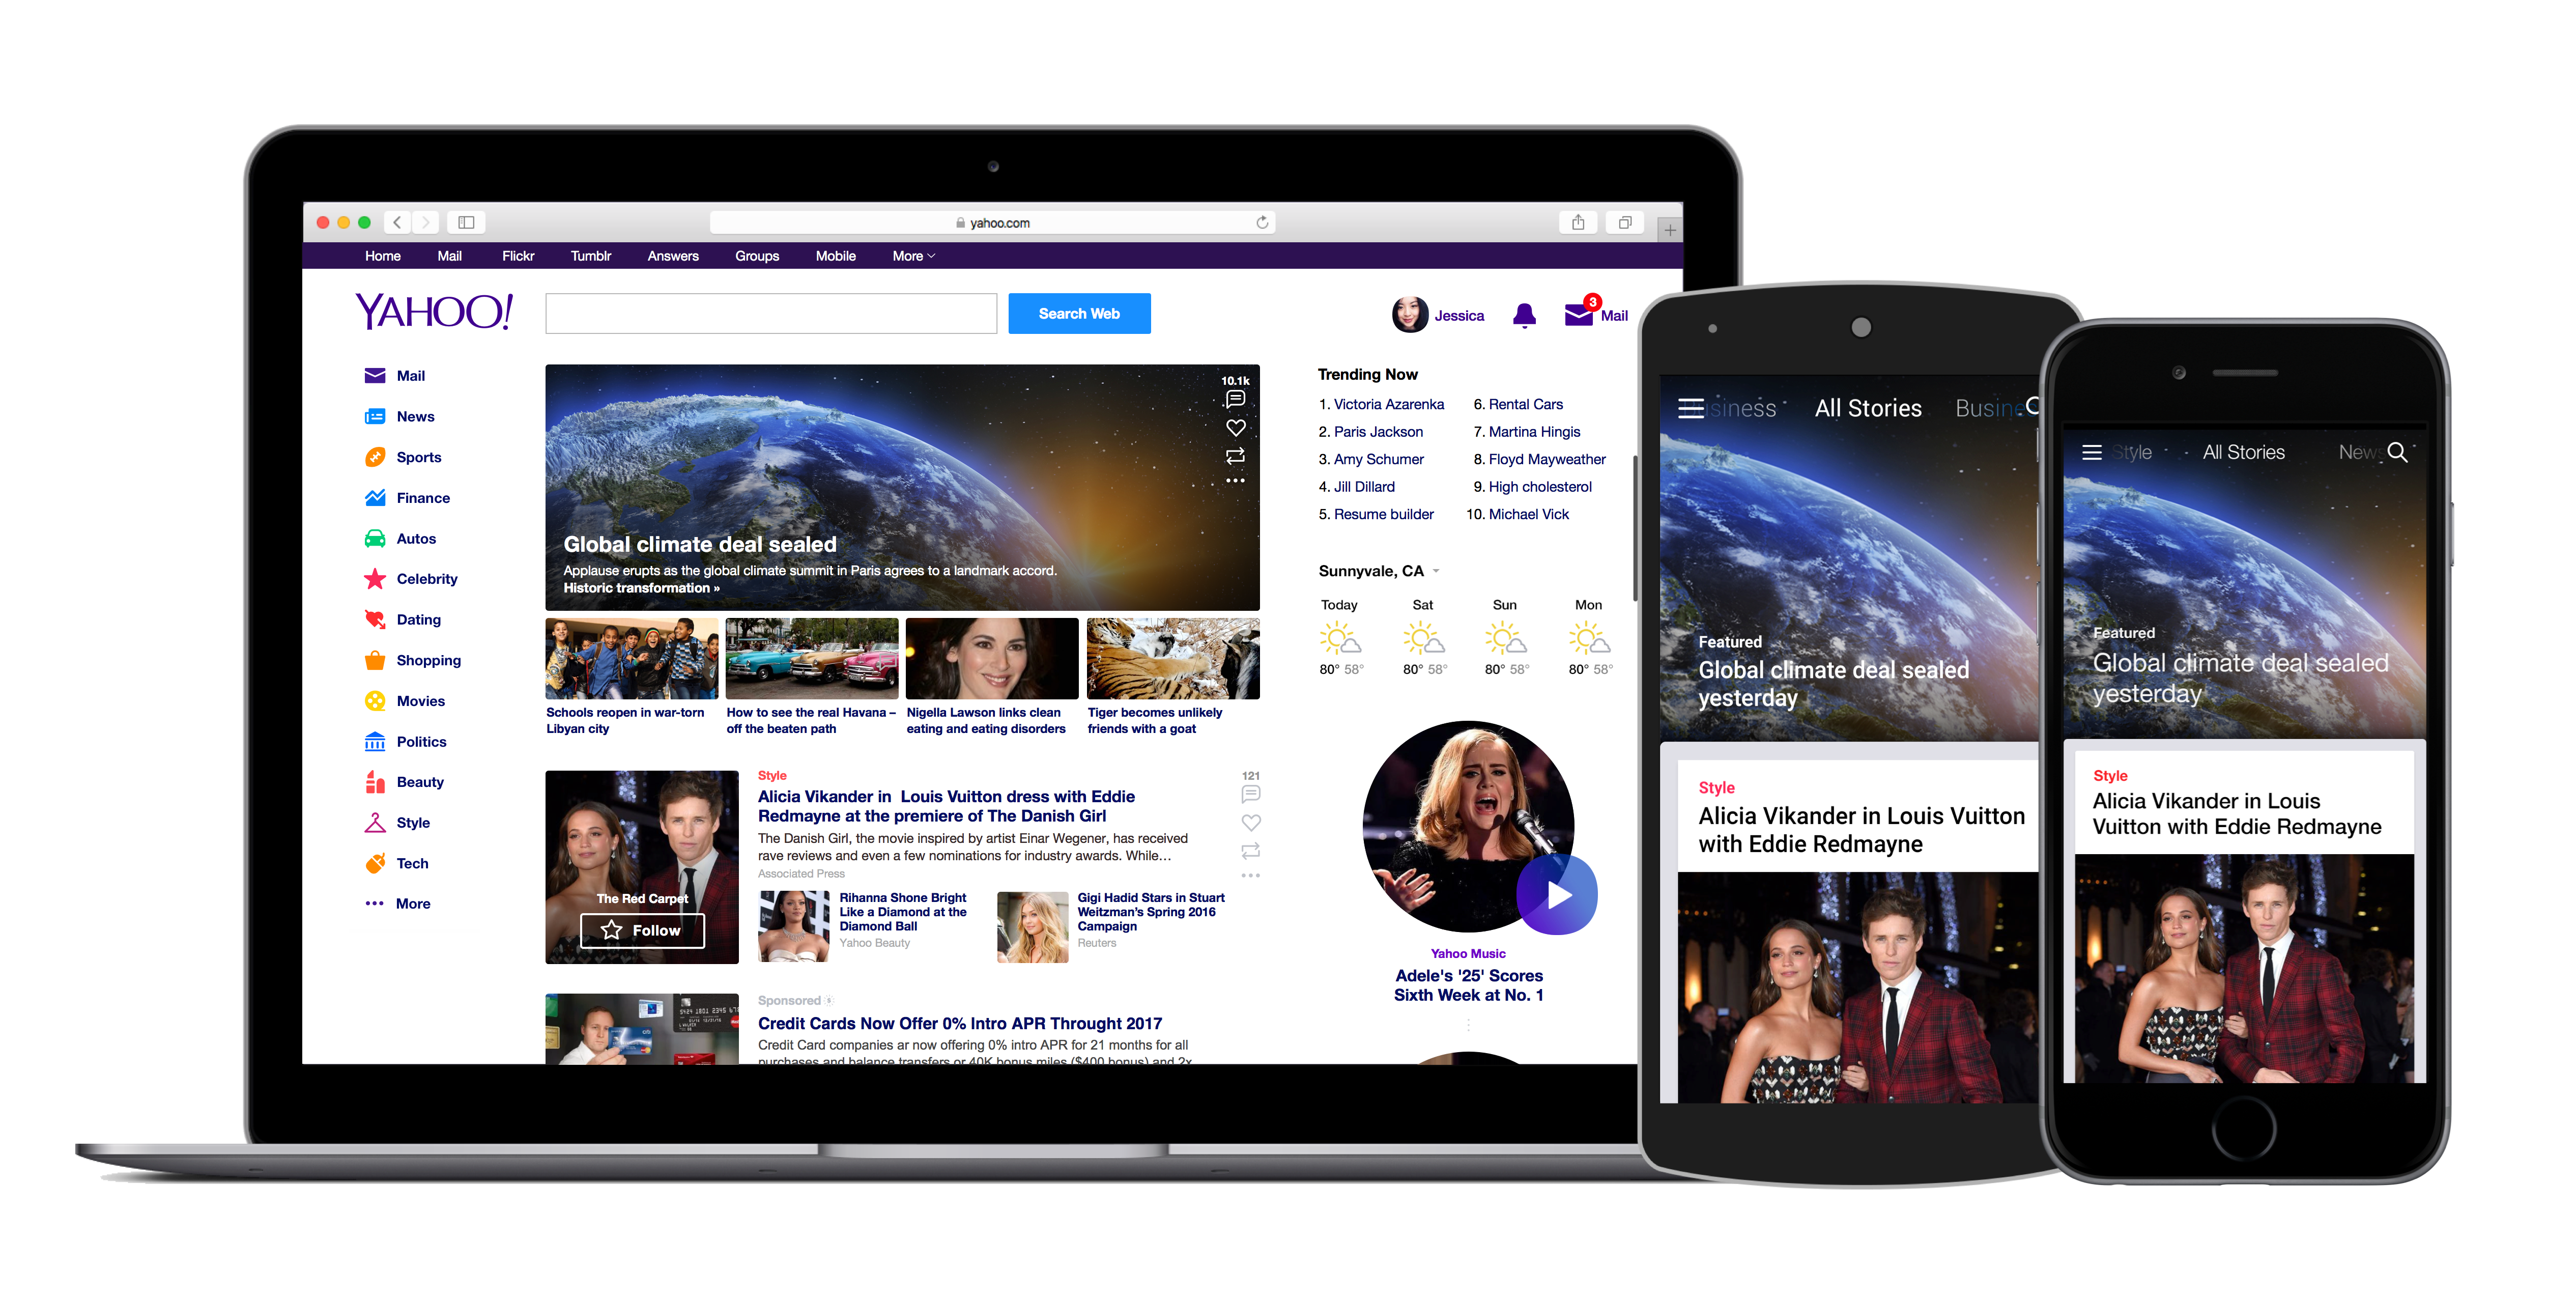 Yahoo News update brings a more personalized news portal to your phone